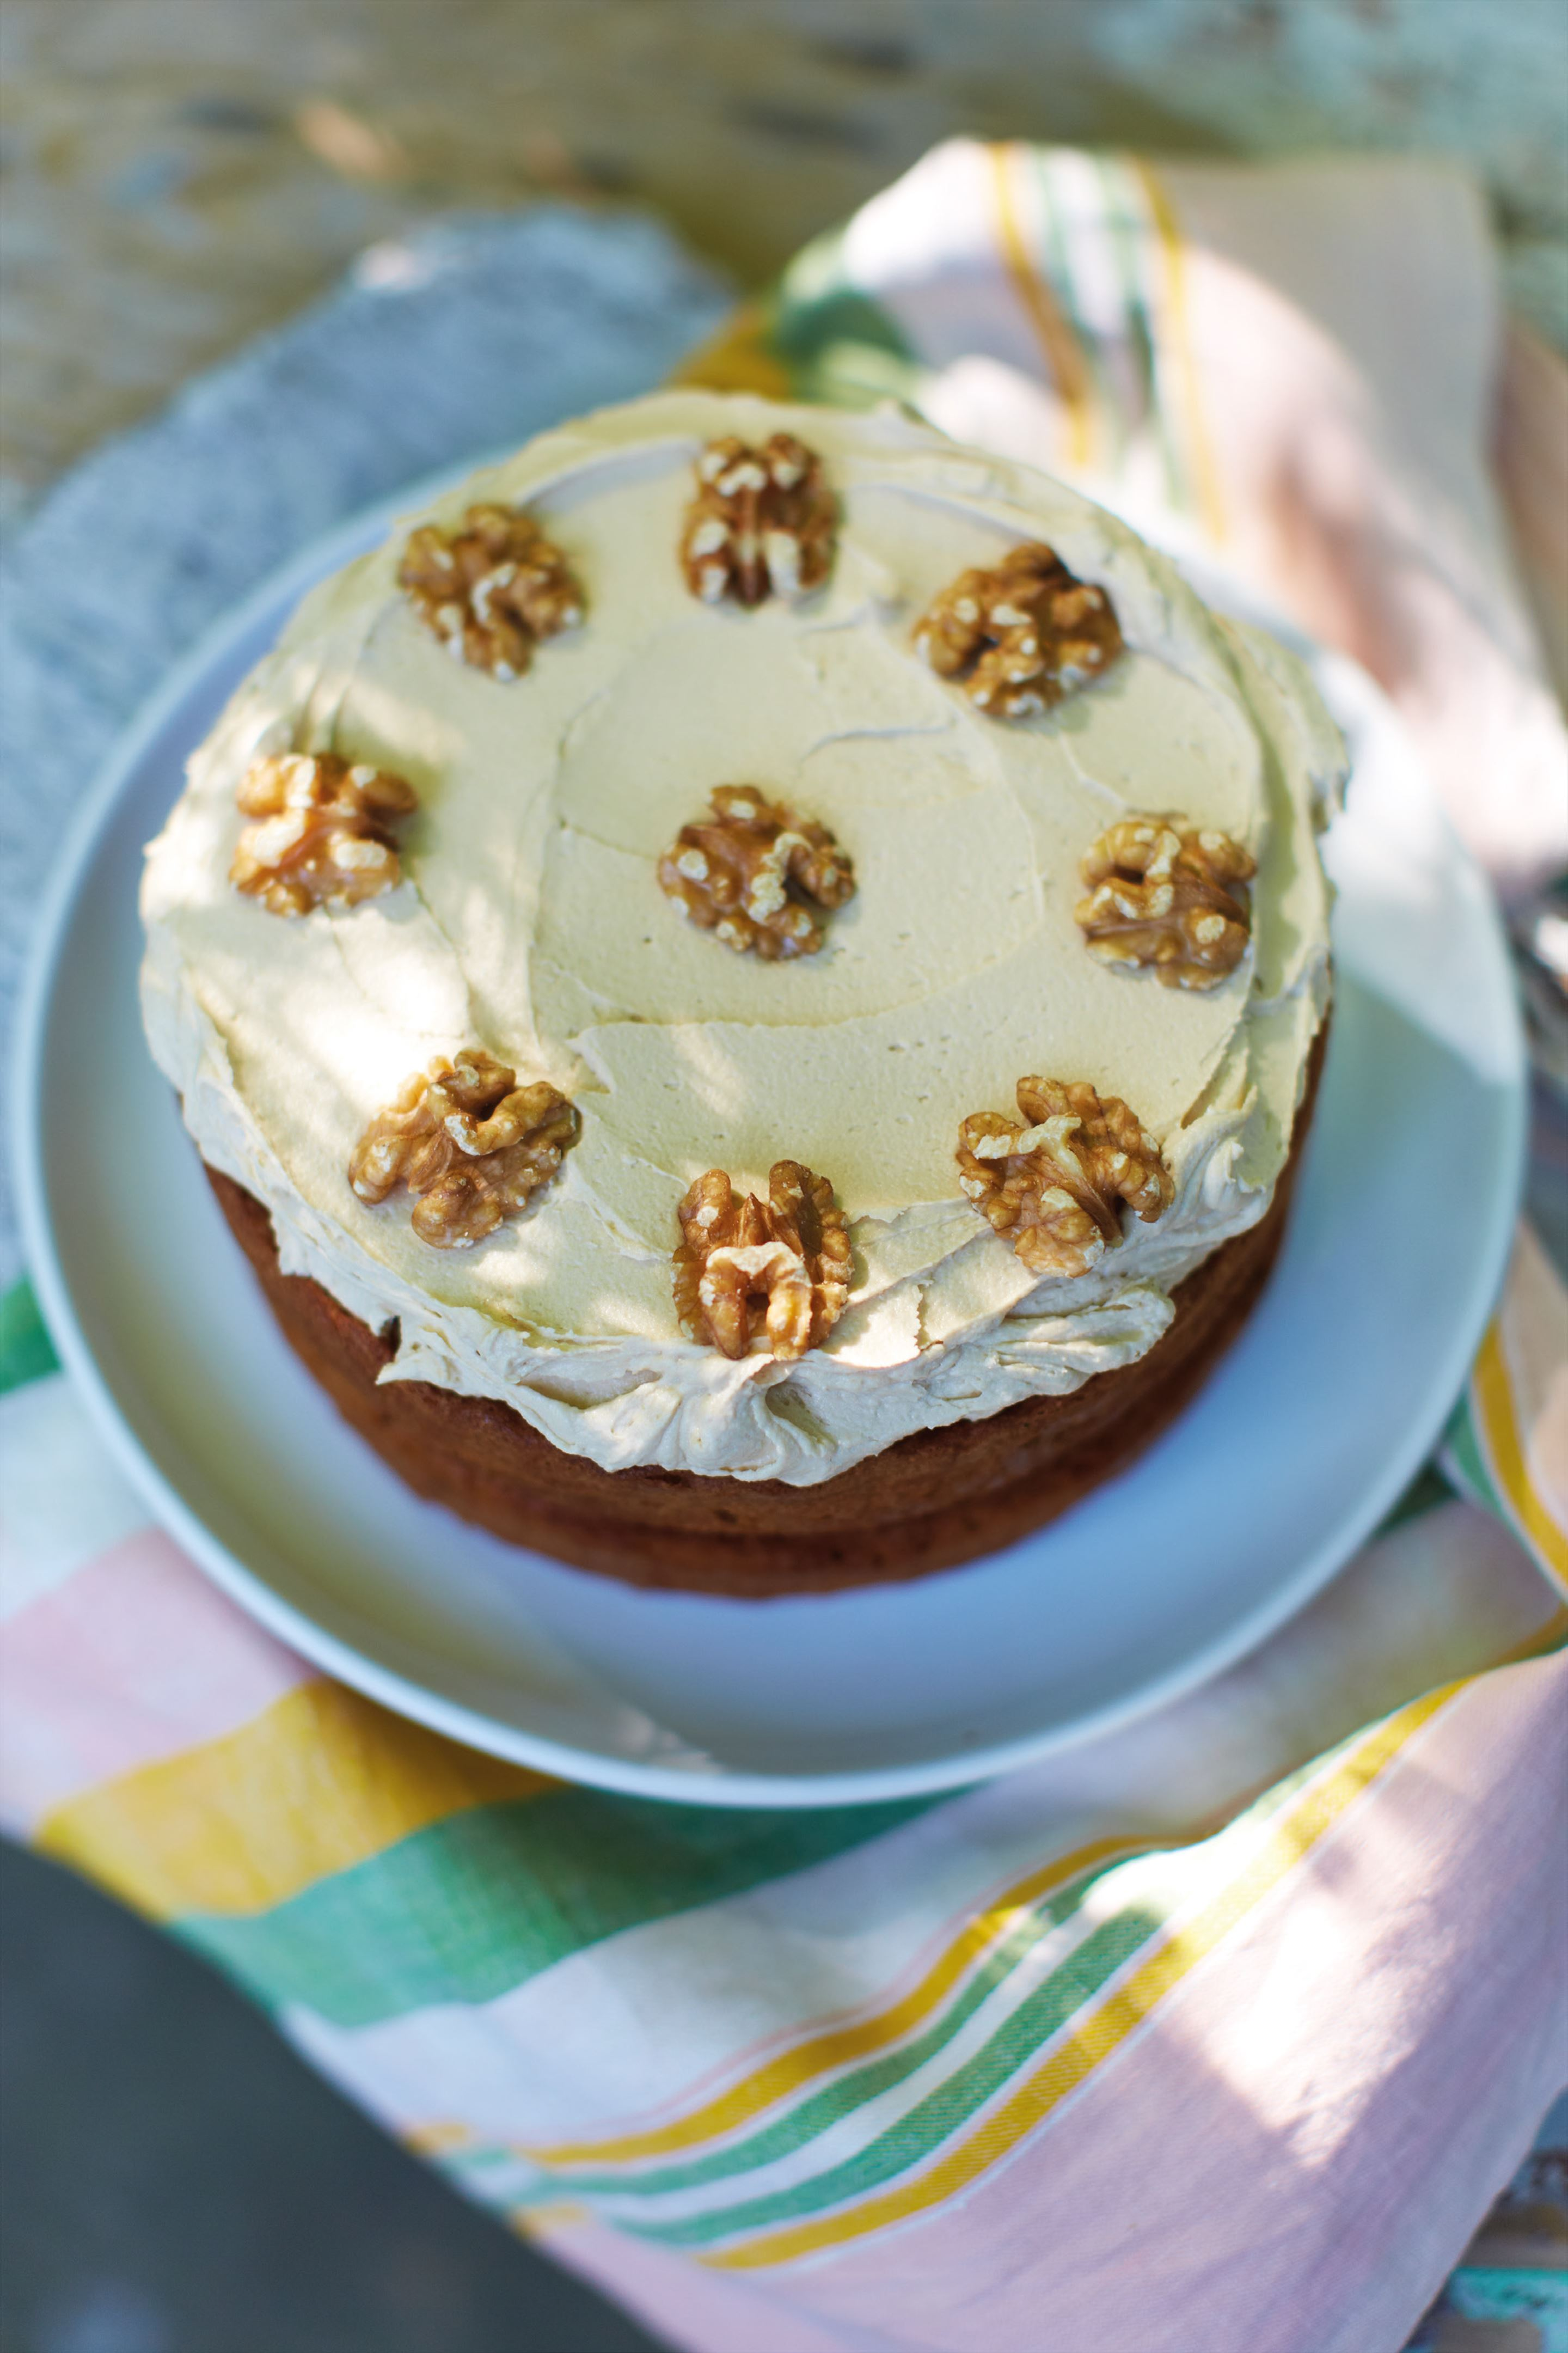 My mum's classic 1970s coffee and walnut cake